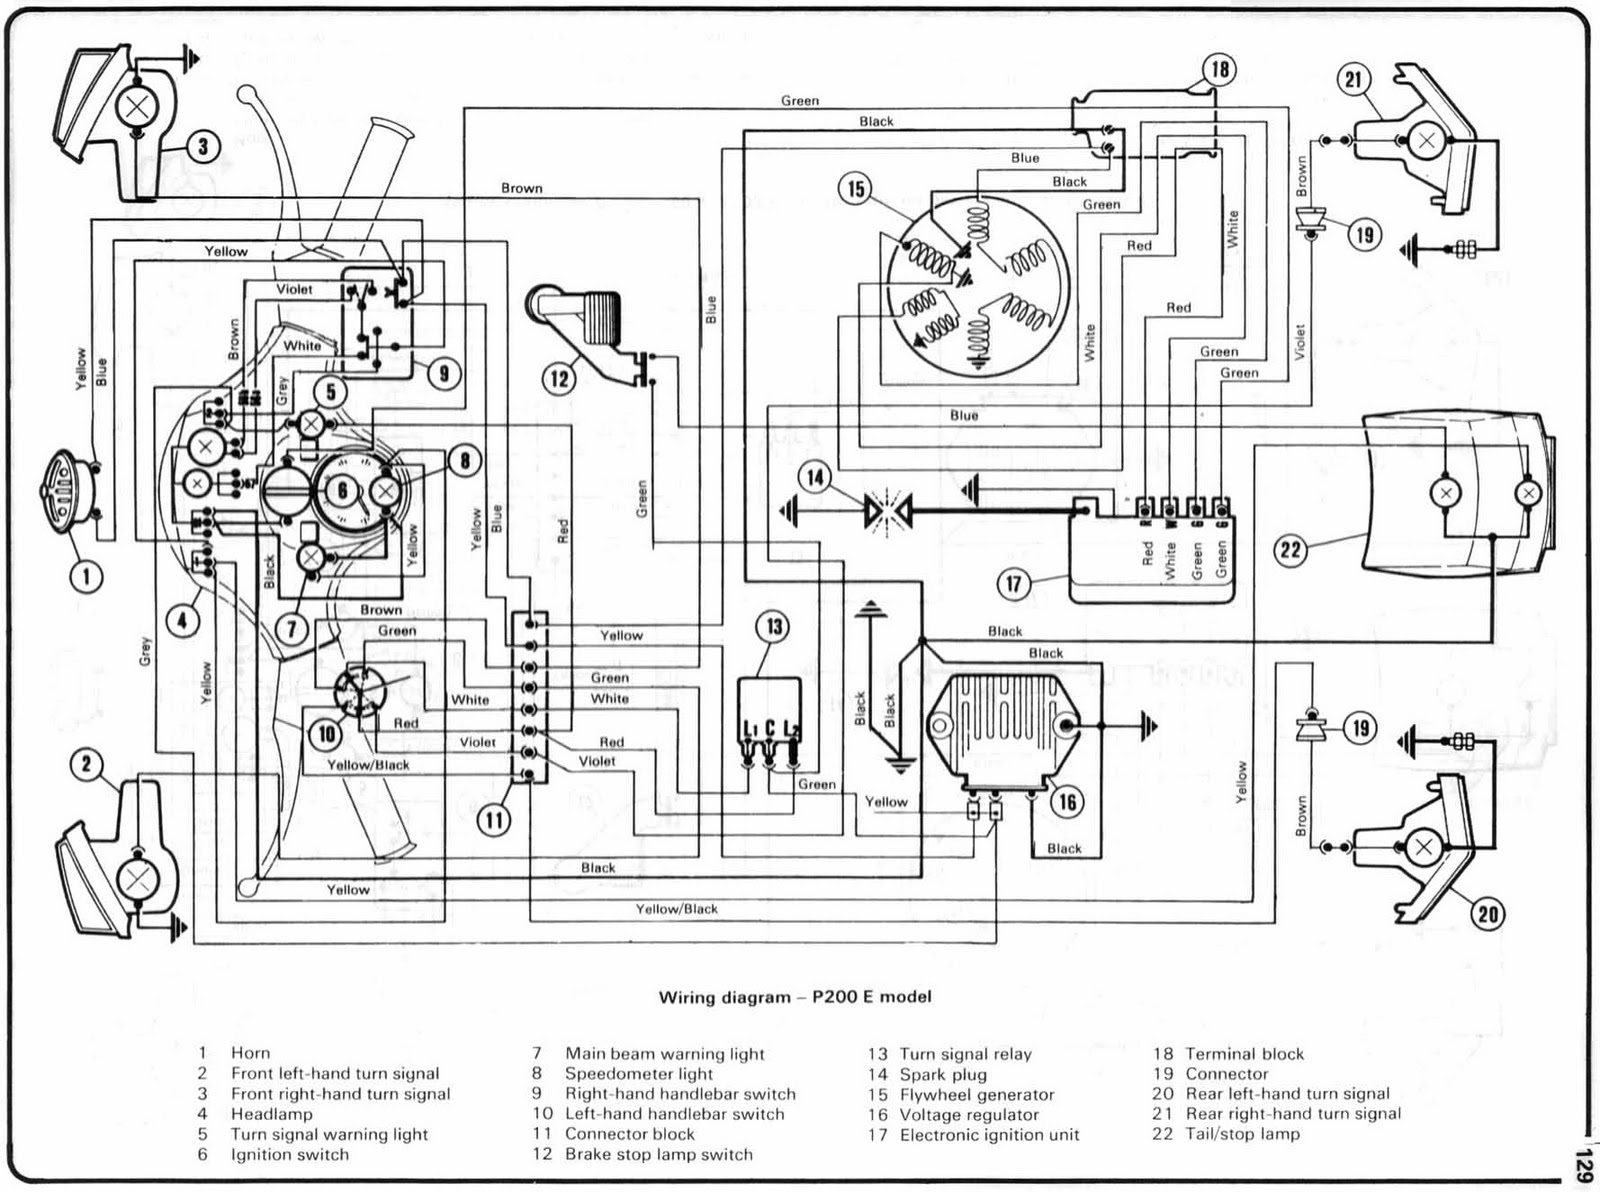 Wiring Diagrams 911: Vespa P200 E Model Wiring Diagram